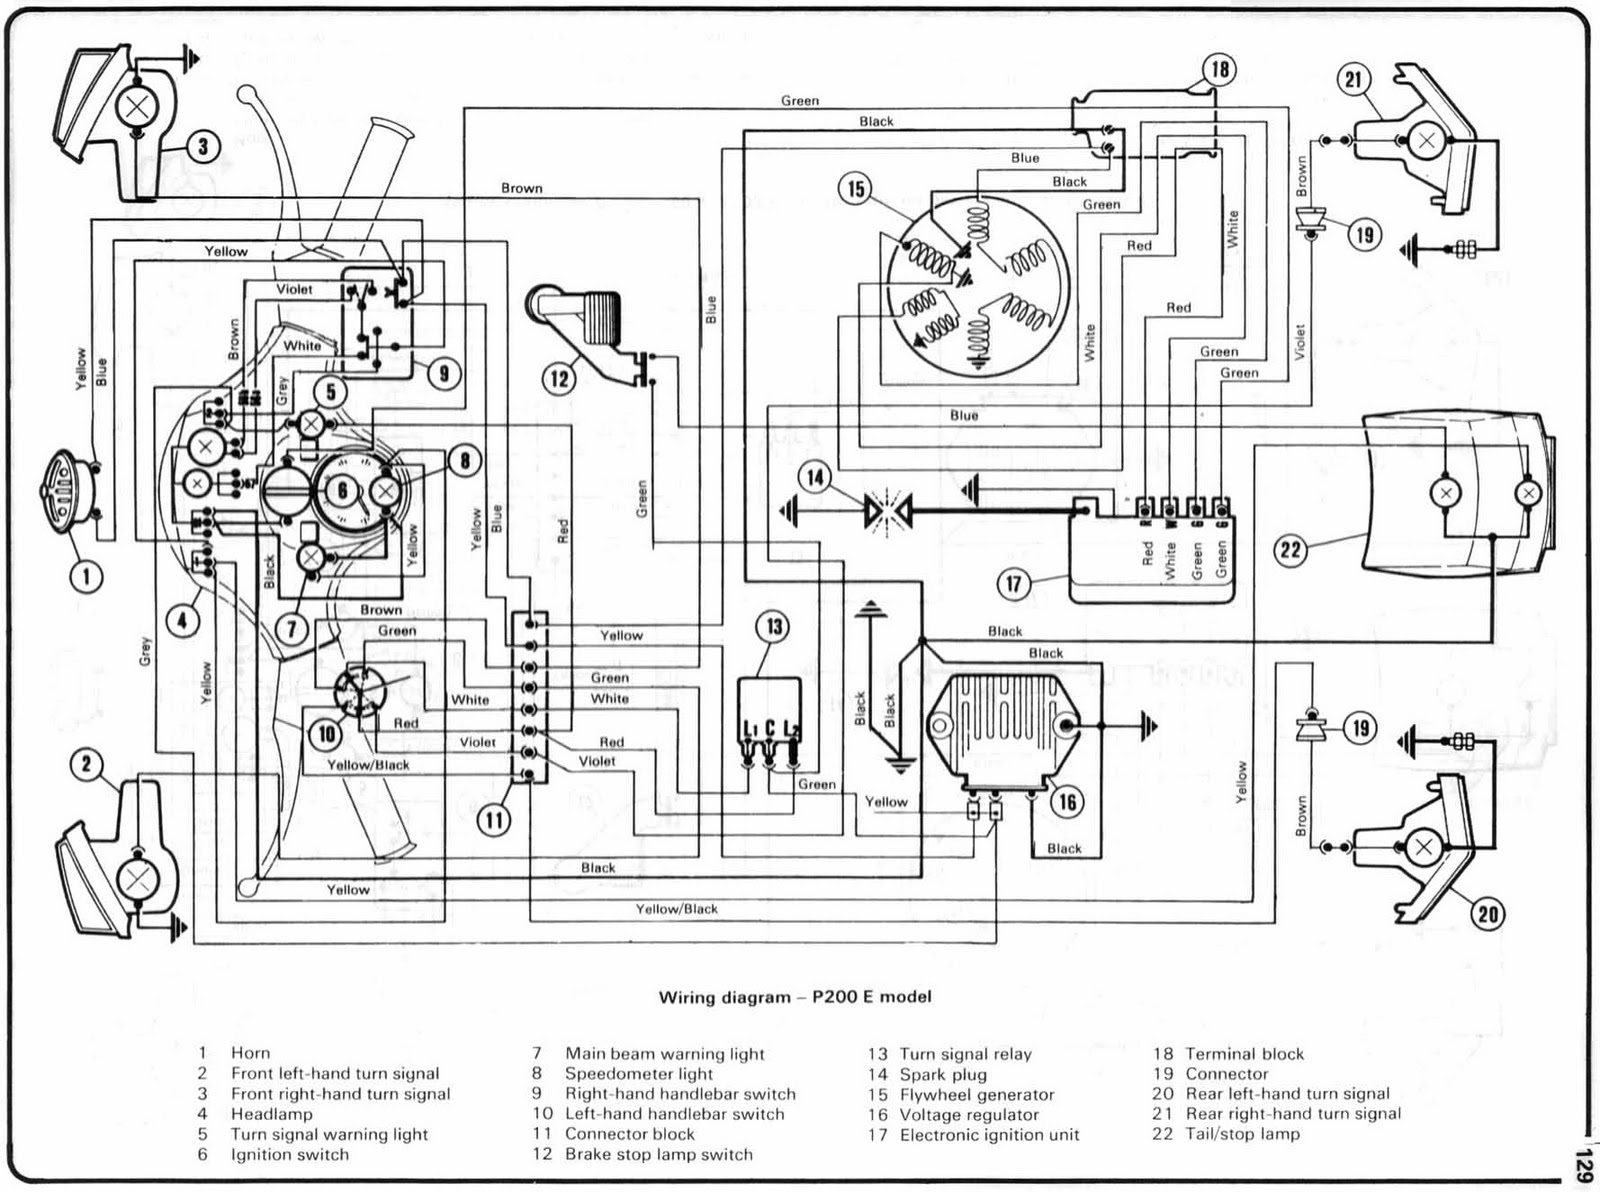 Wiring Diagrams 911: Vespa P200 E Model Wiring Diagram